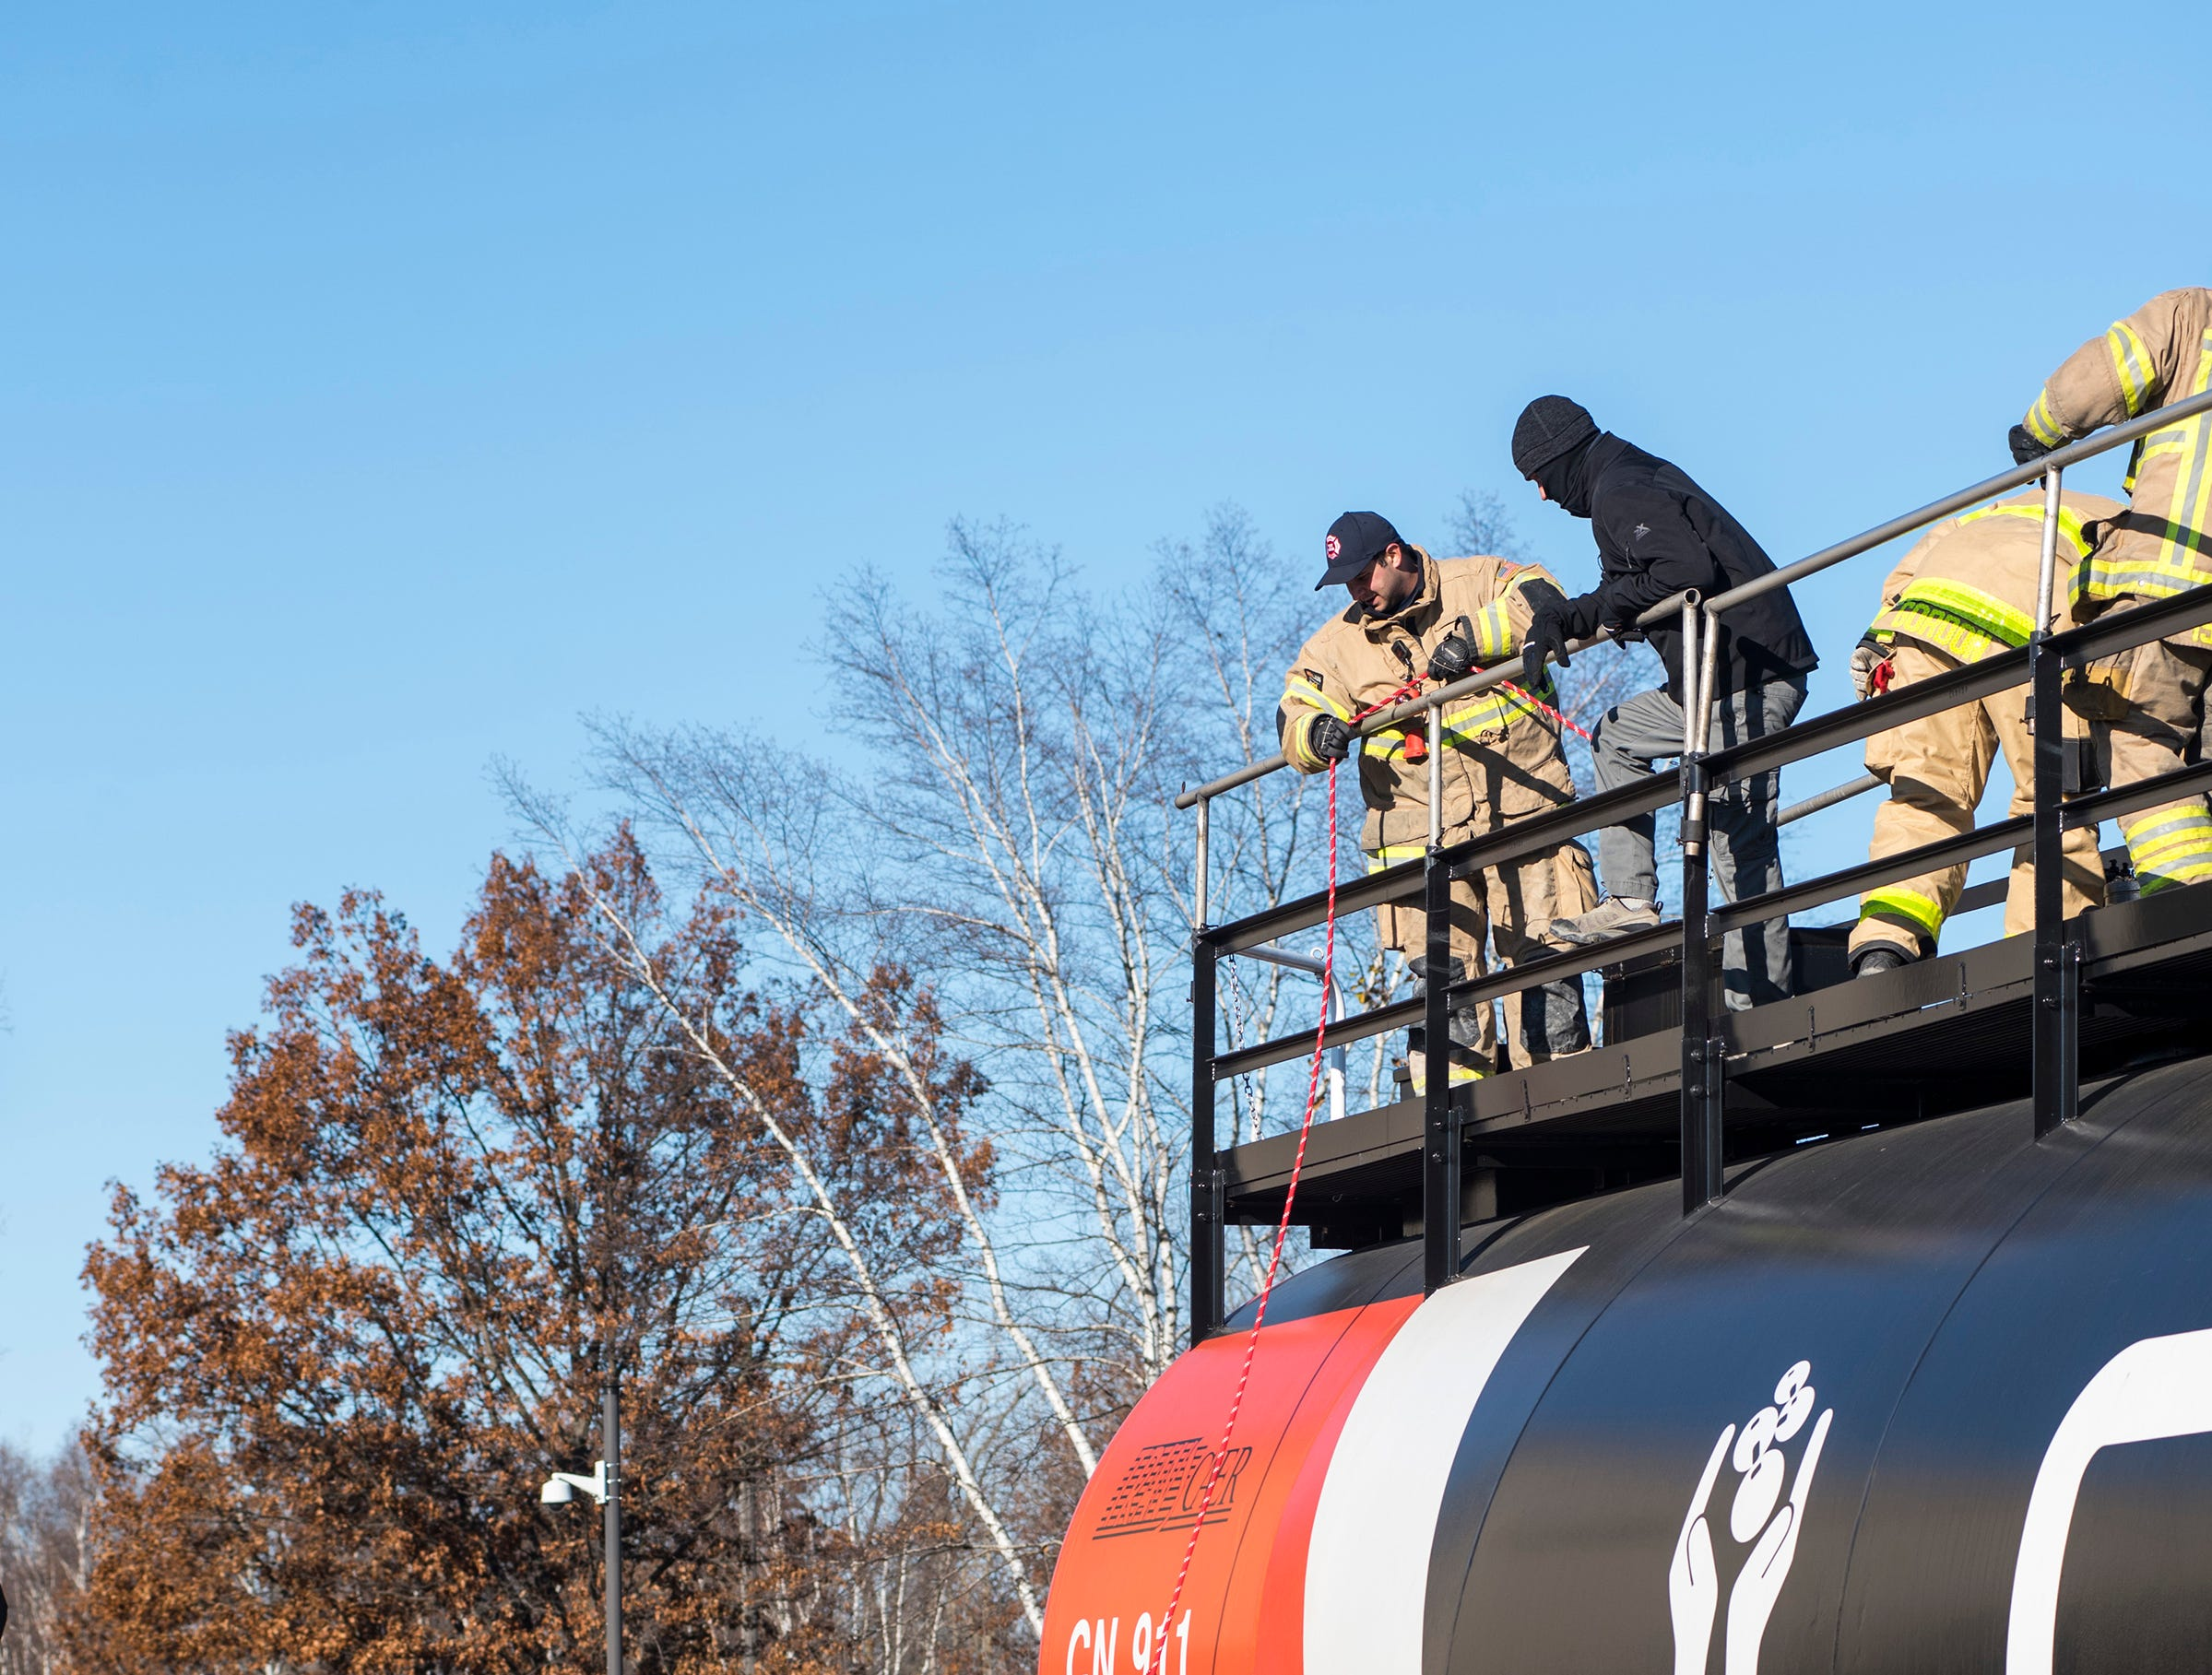 Port Huron Firefighter Peter Lafata, top, lowers a bucket of tools down the side of a CN Rail tank car to Clinton Township Firefighter Terry Hollstein during a hazardous materials training Wednesday, Nov. 14, 2018 at CN Rail yard in Port Huron.